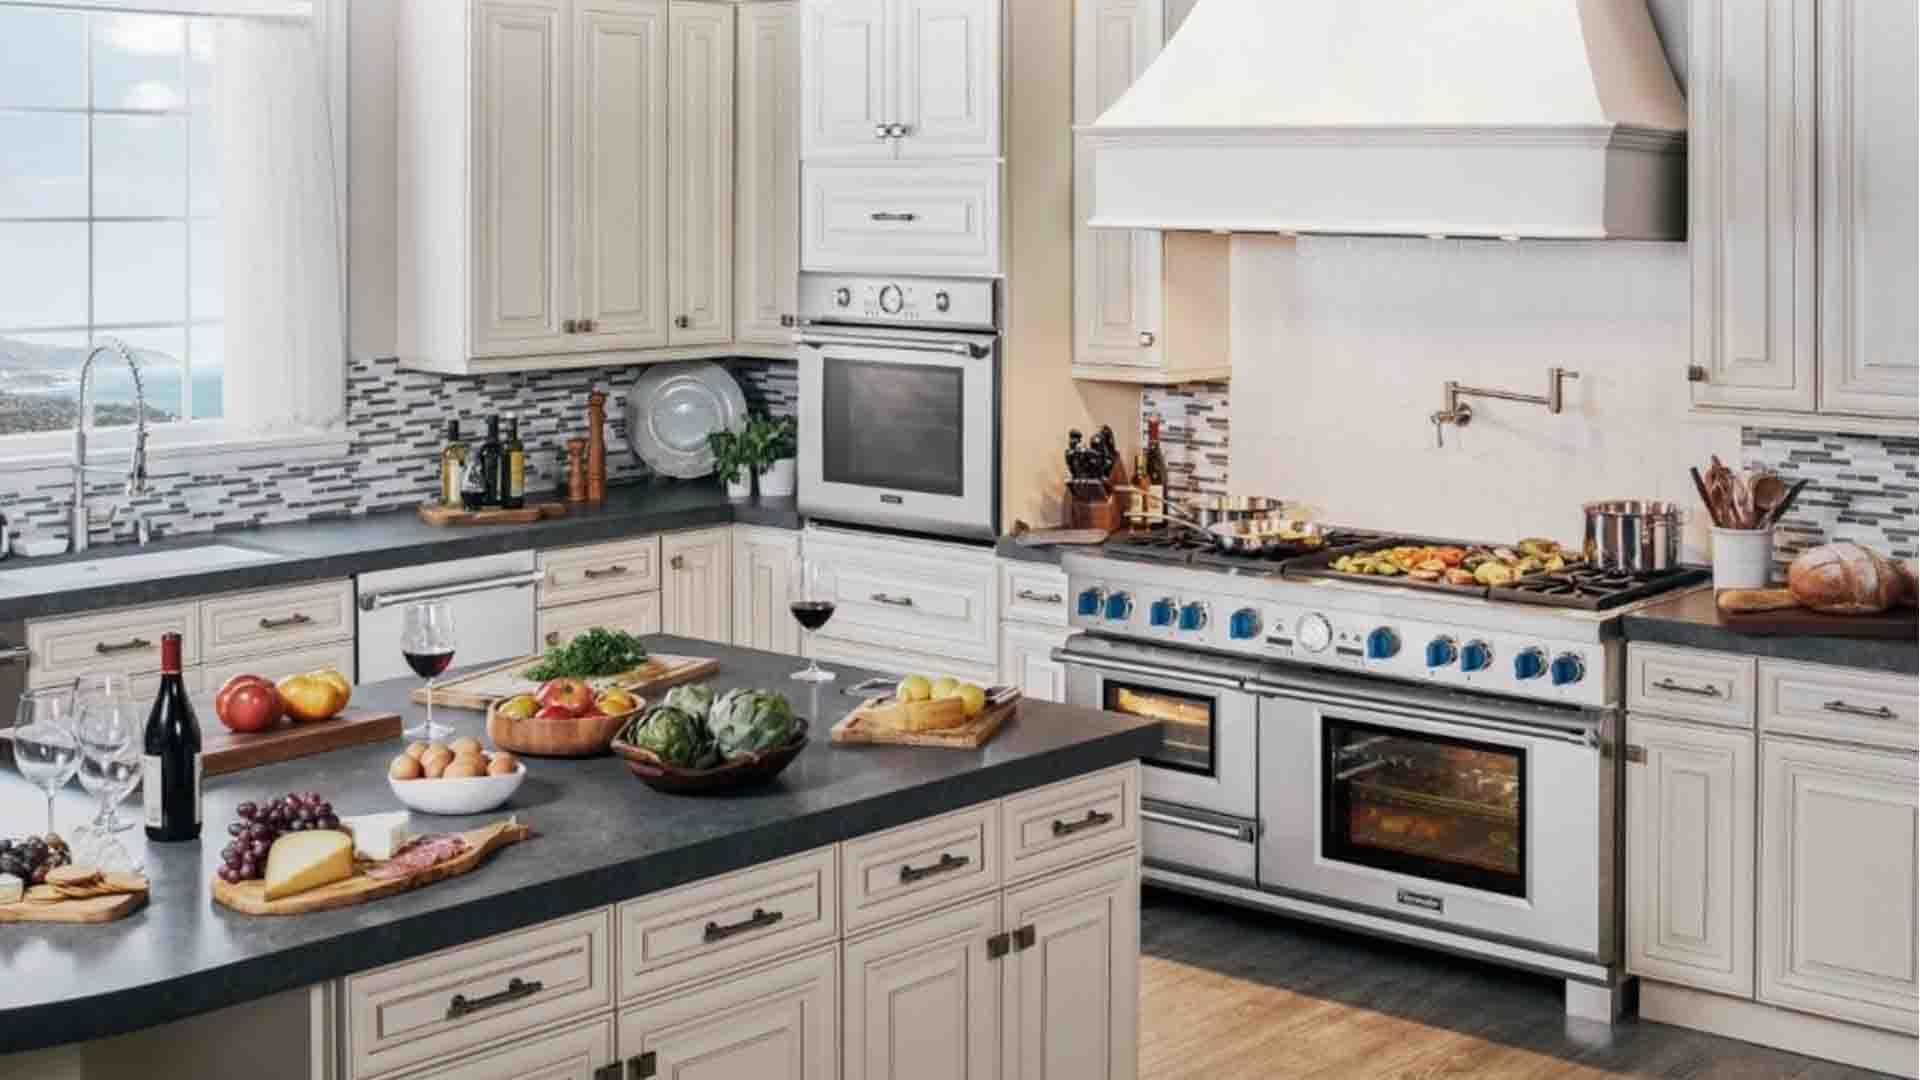 Thermador Appliance Repair Service Near Me | Thermador Appliance Repair Pros